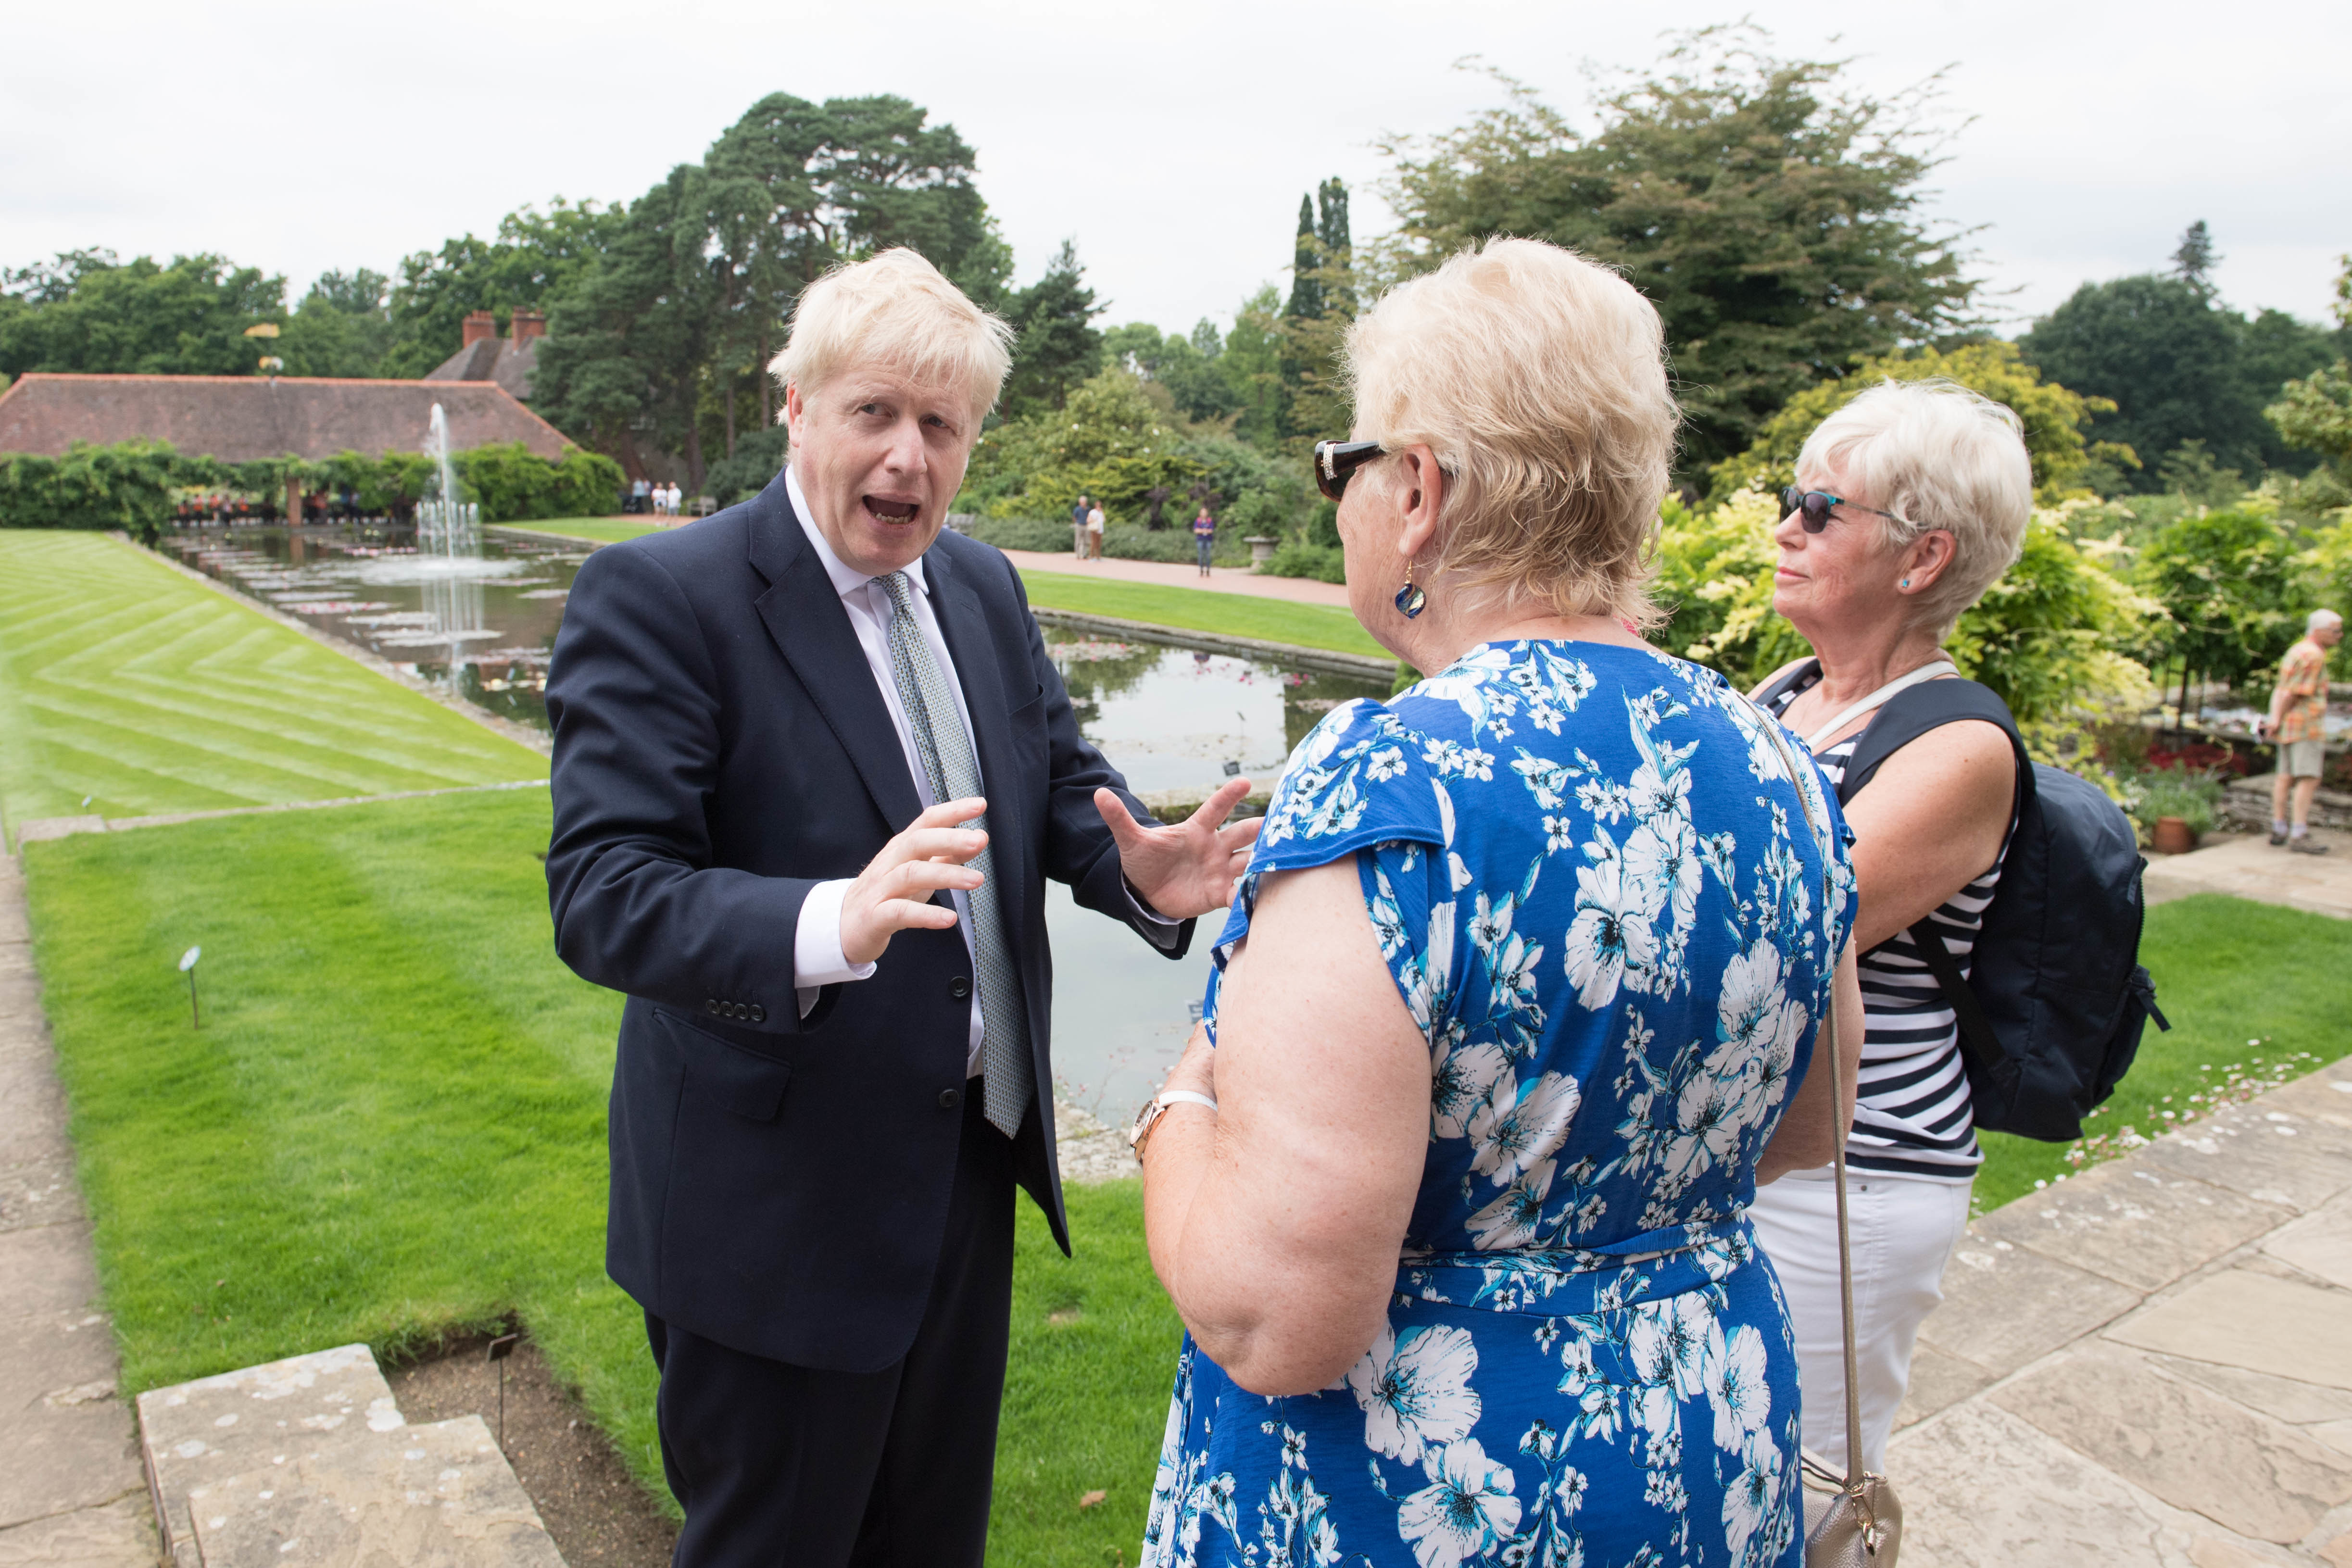 Conservative party leadership candidate Boris Johnson talks to visitors during a tour of the RHS (Royal Horticultural Society) garden at Wisley, in Surrey.